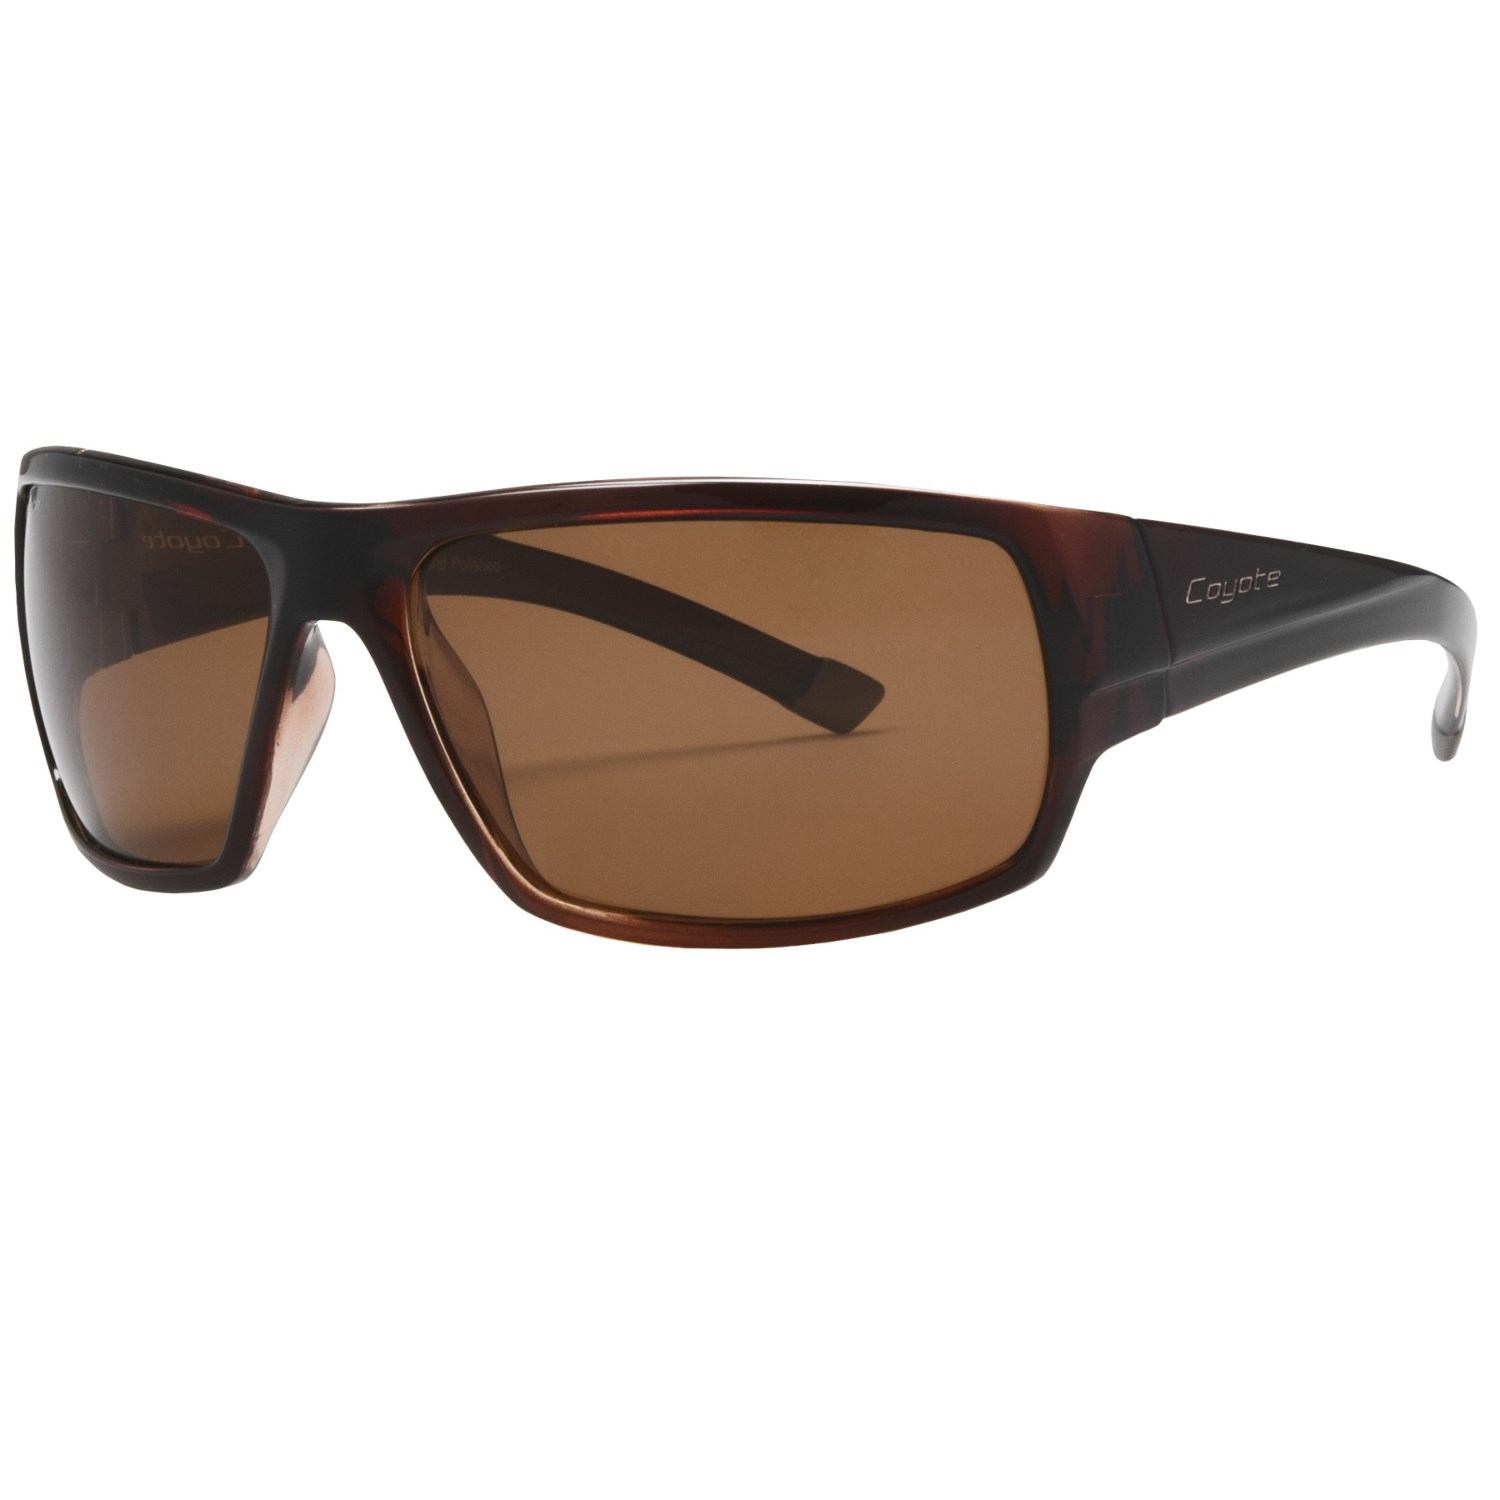 Coyote Eyewear Rebel Sunglasses